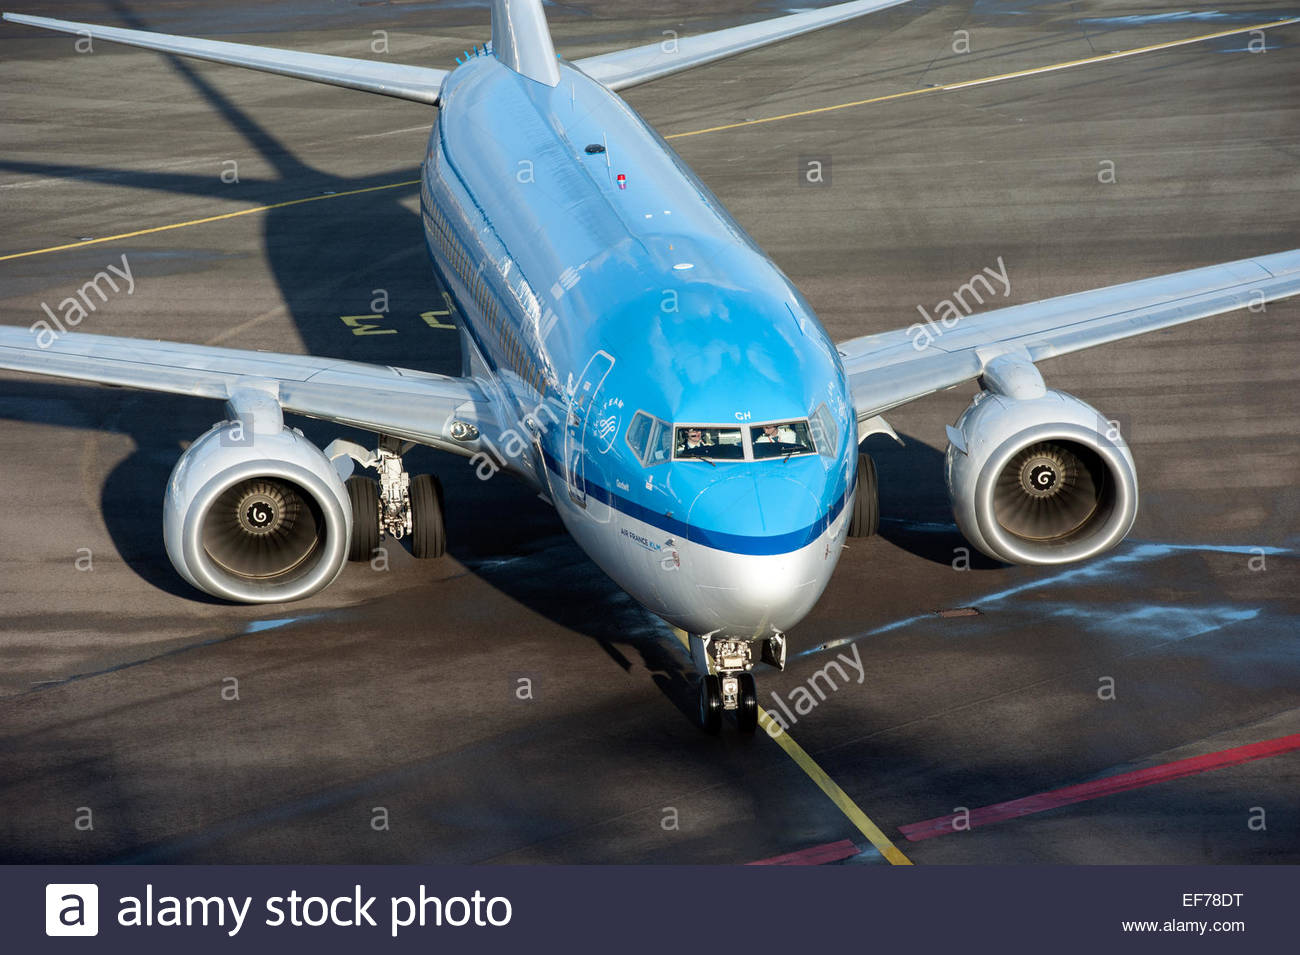 Amsterdam Schiphol Klm Boeing 737 Taxiing To Its Gate